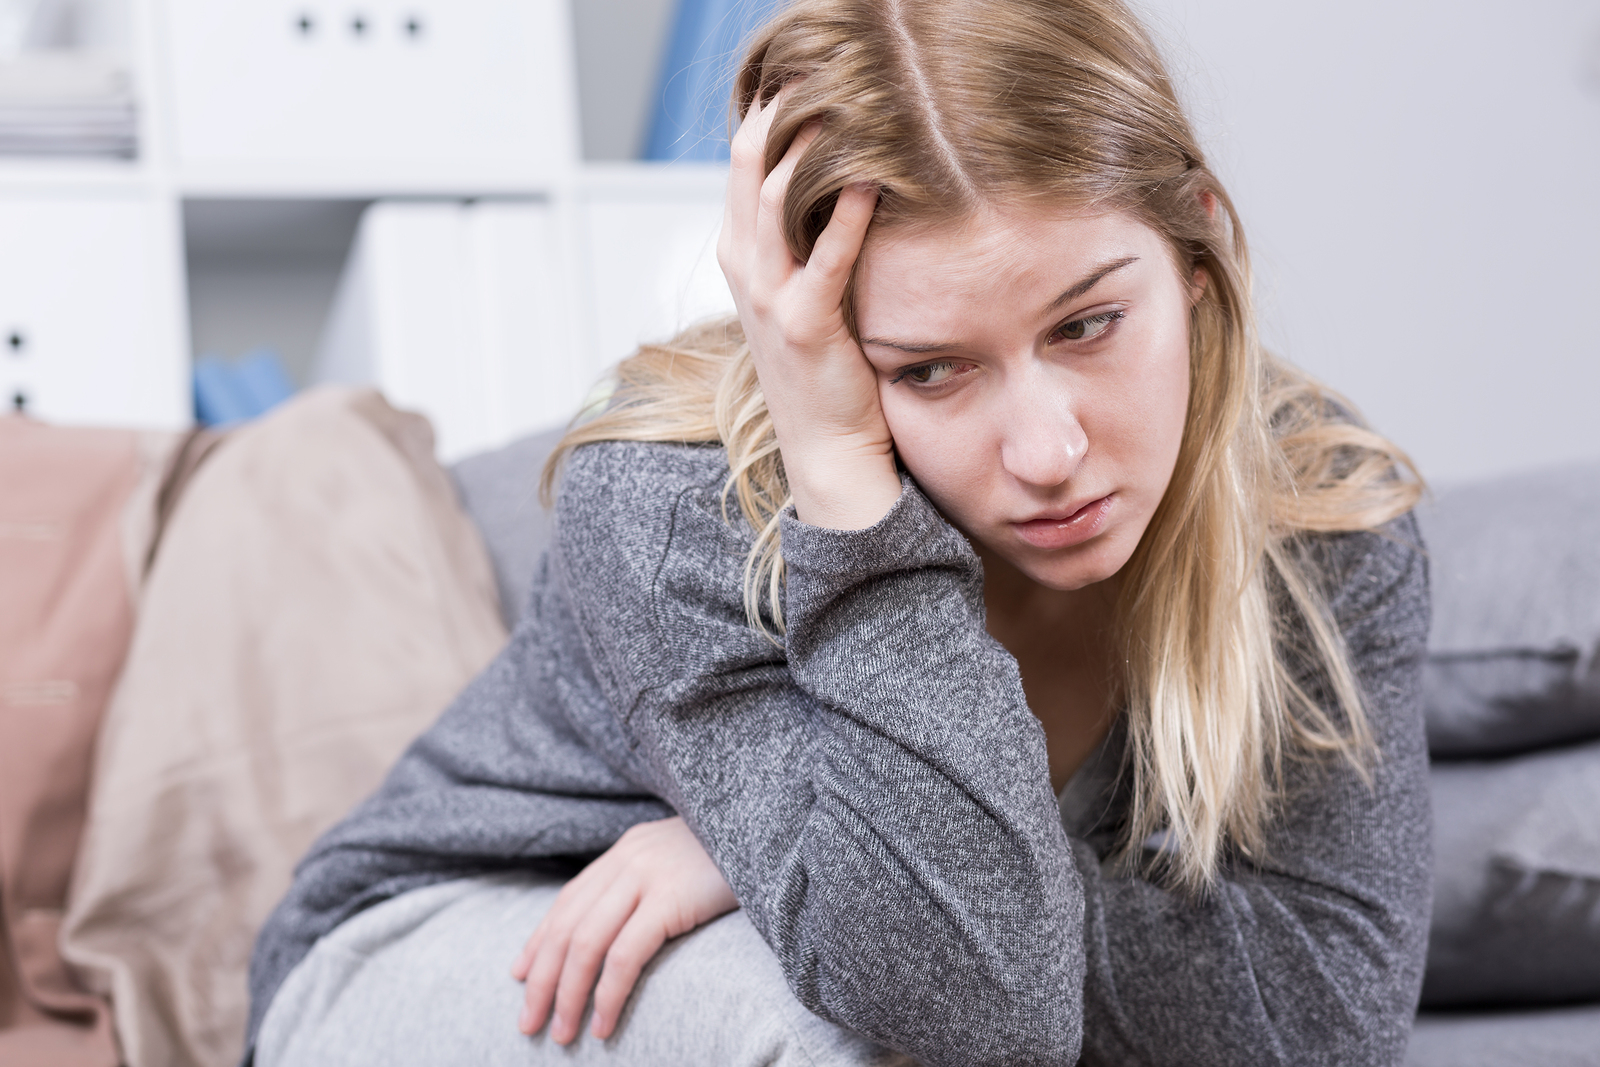 Women face intense emotions after having an unplanned C-section, ranging from happiness all the way to regret and guilt, and the questions and comments from others only encourage that C-section guilt.